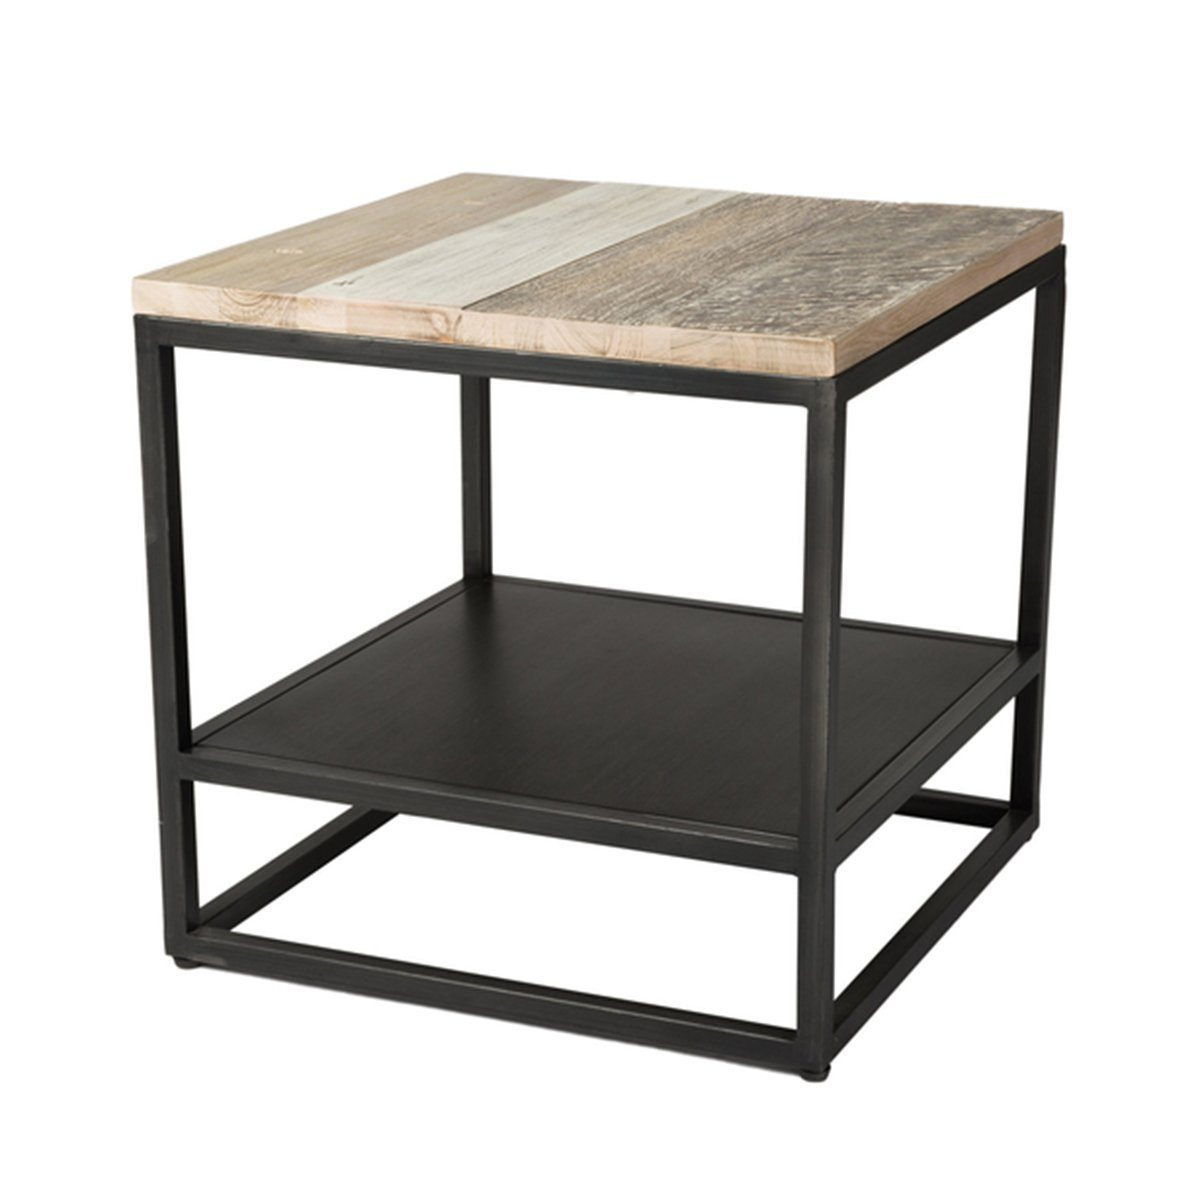 SOLID ACACIA WOOD METRO HAVANA END TABLE End Table LH